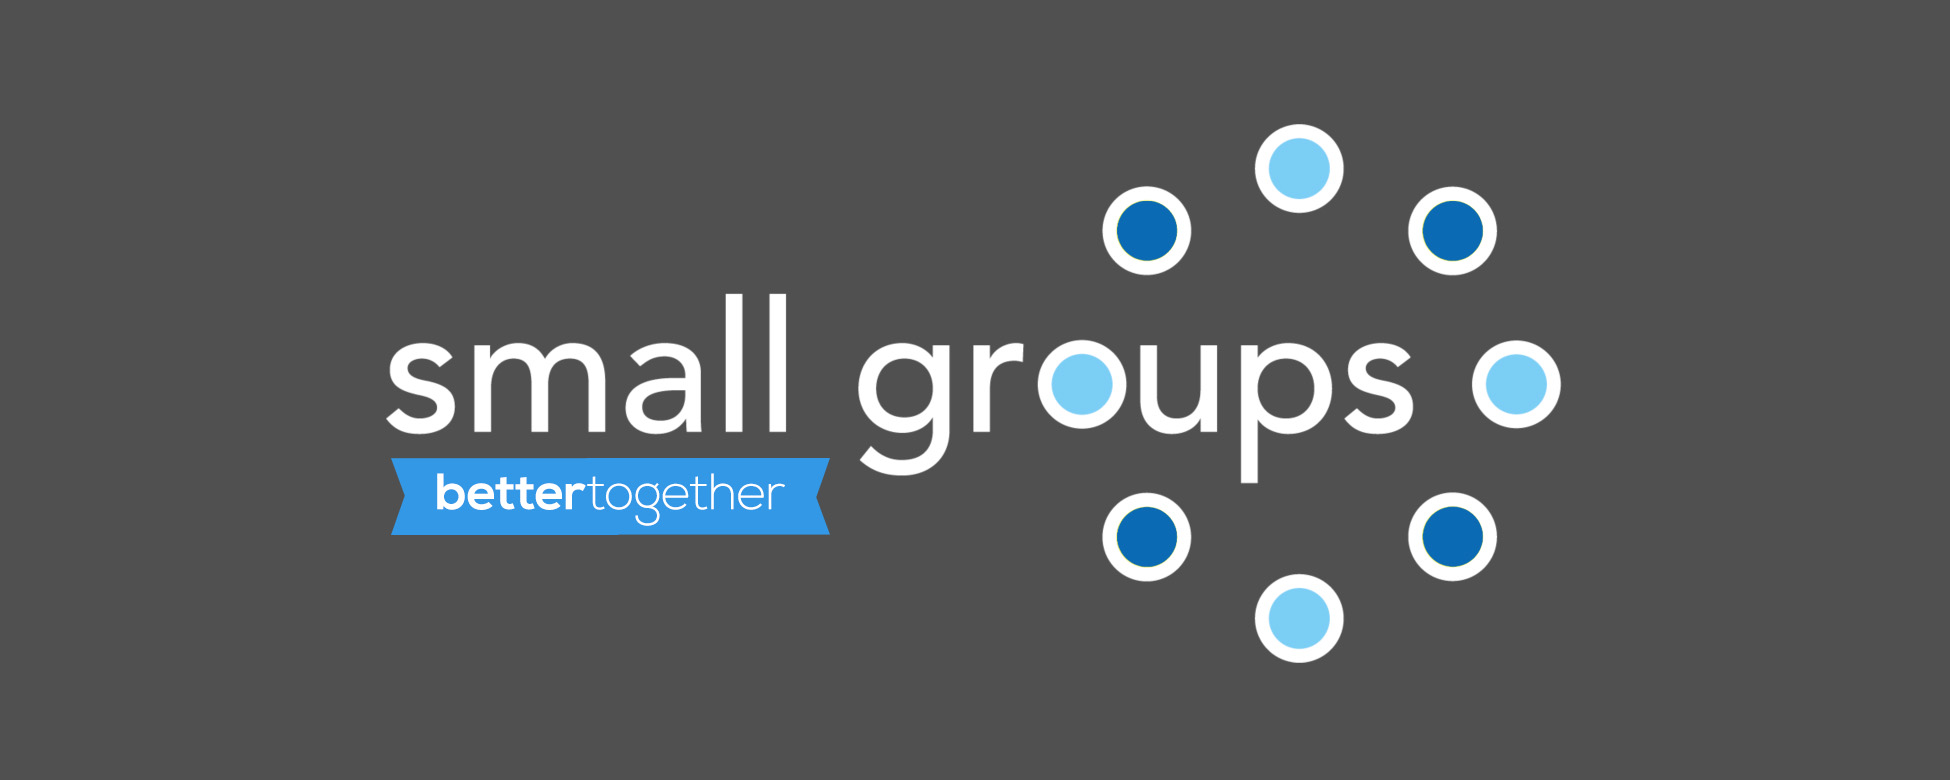 small-groups-better-together